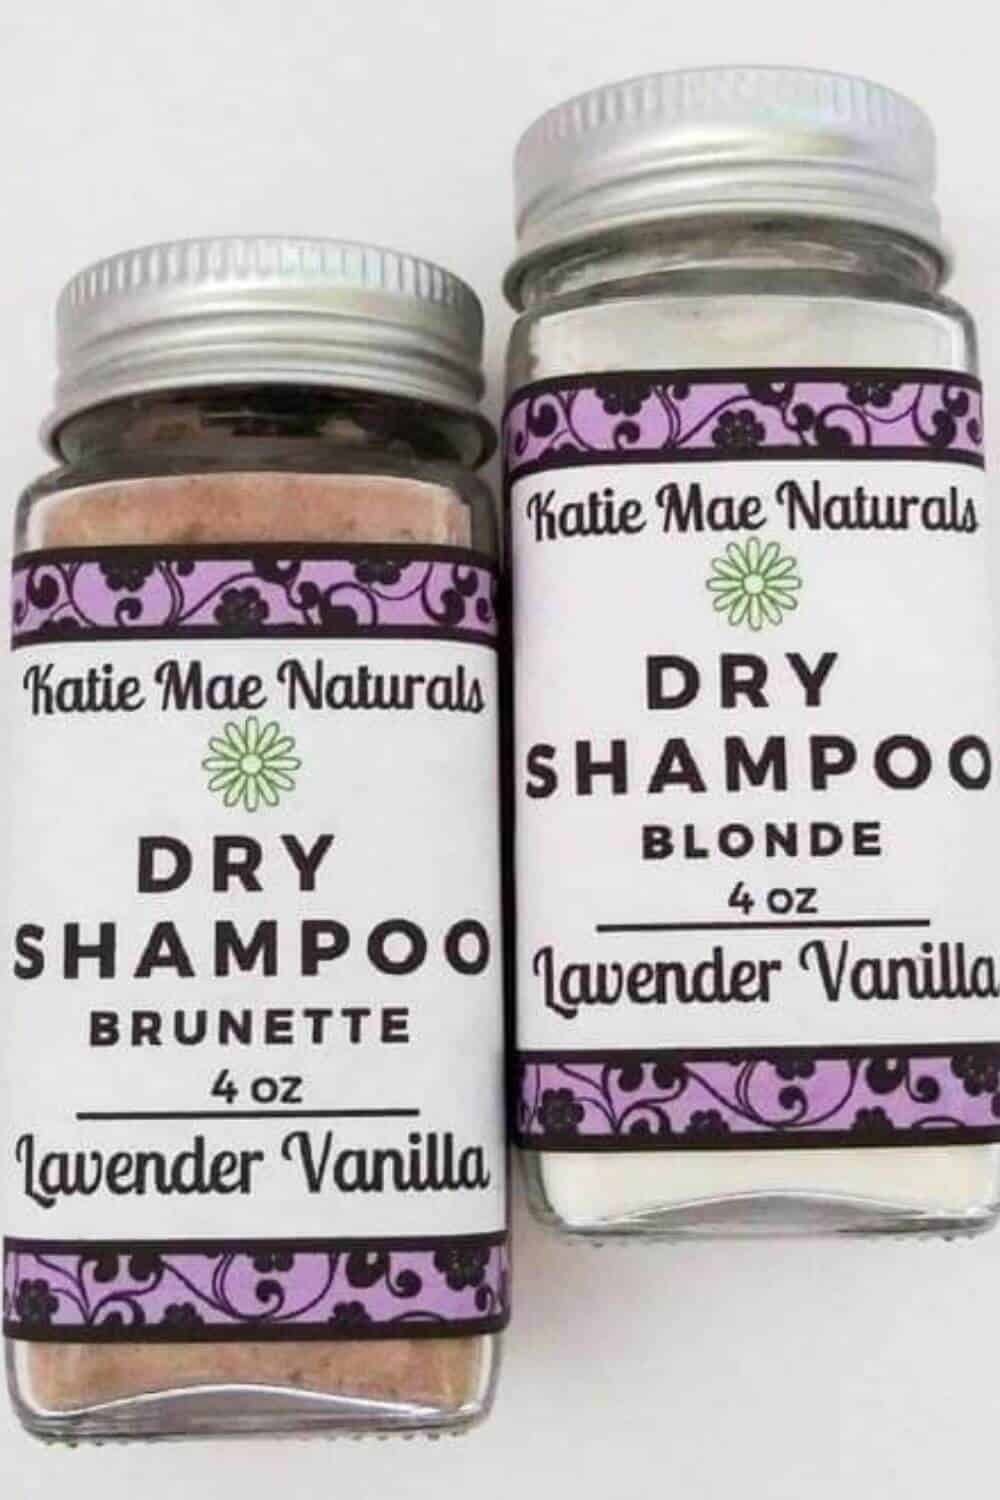 Switching to vegan and cruelty-free shampoo, conditioner, and other hair products is great but isn't enough from an environmental perspective. Thankfully, there are now many zero waste shampoo and conditioners available. Image by Katie Mae Naturals #zerowasteshampoo #zerowasteconditioner #sustainablejungle